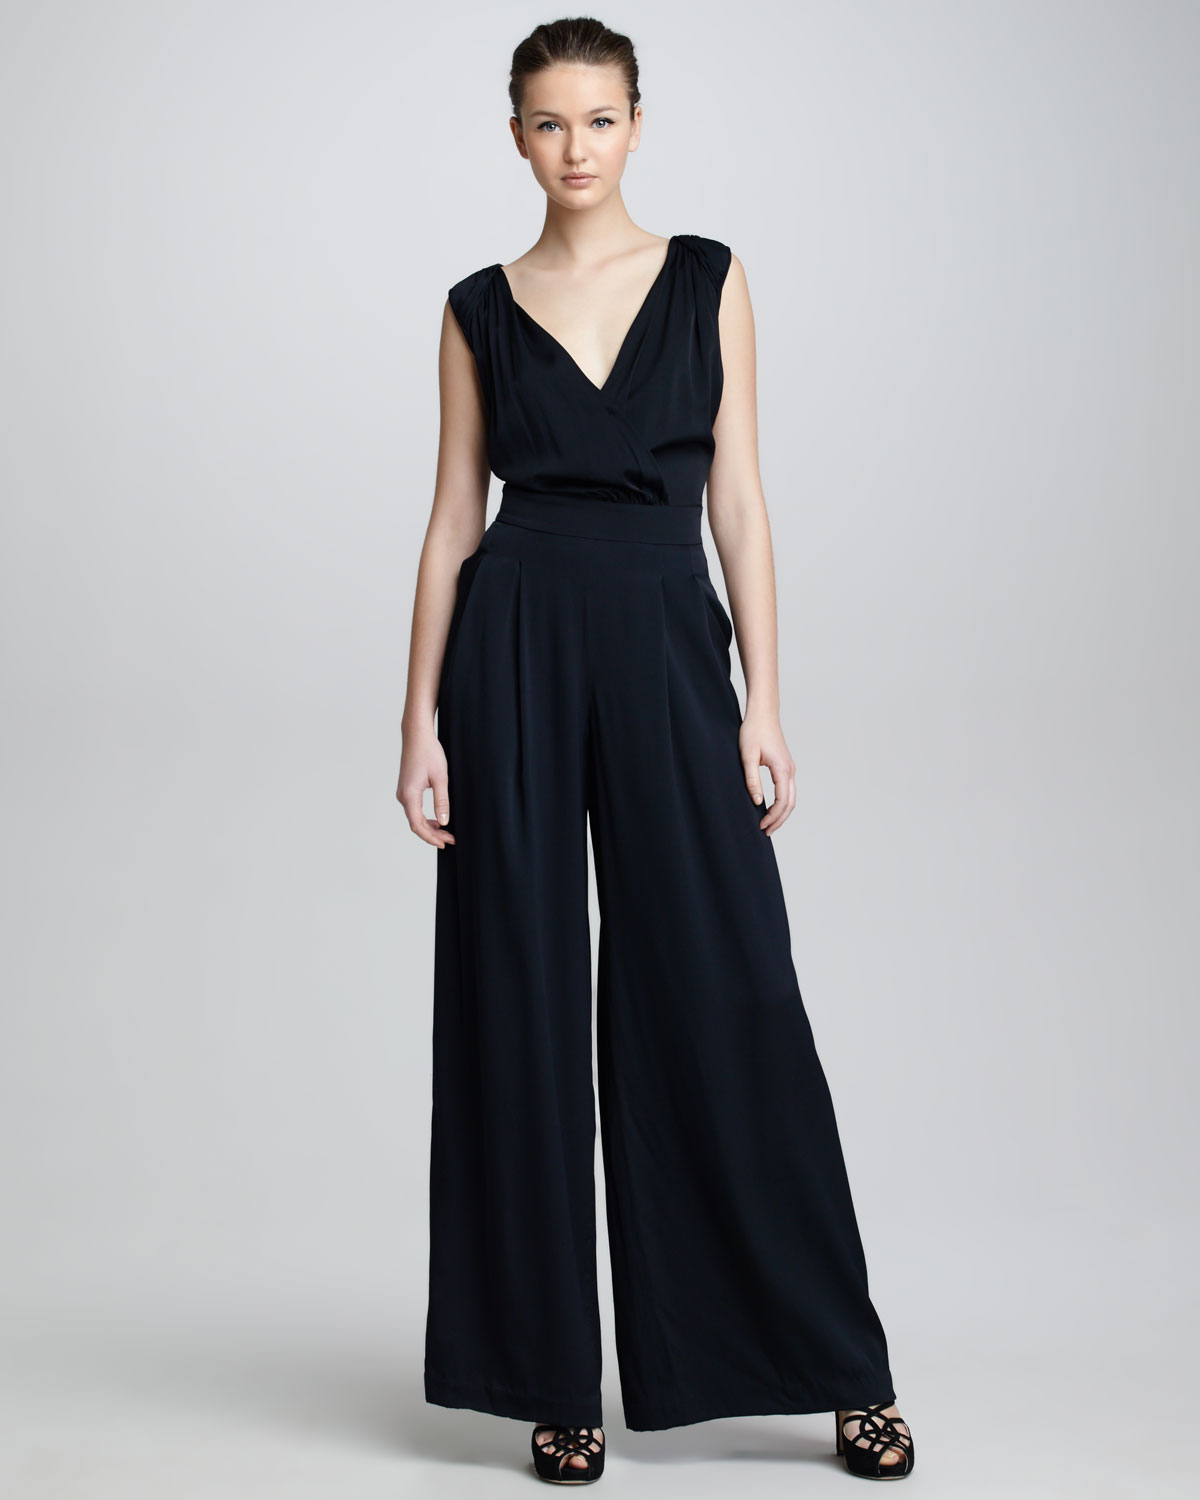 Armani Wideleg Jumpsuit in Black | Lyst